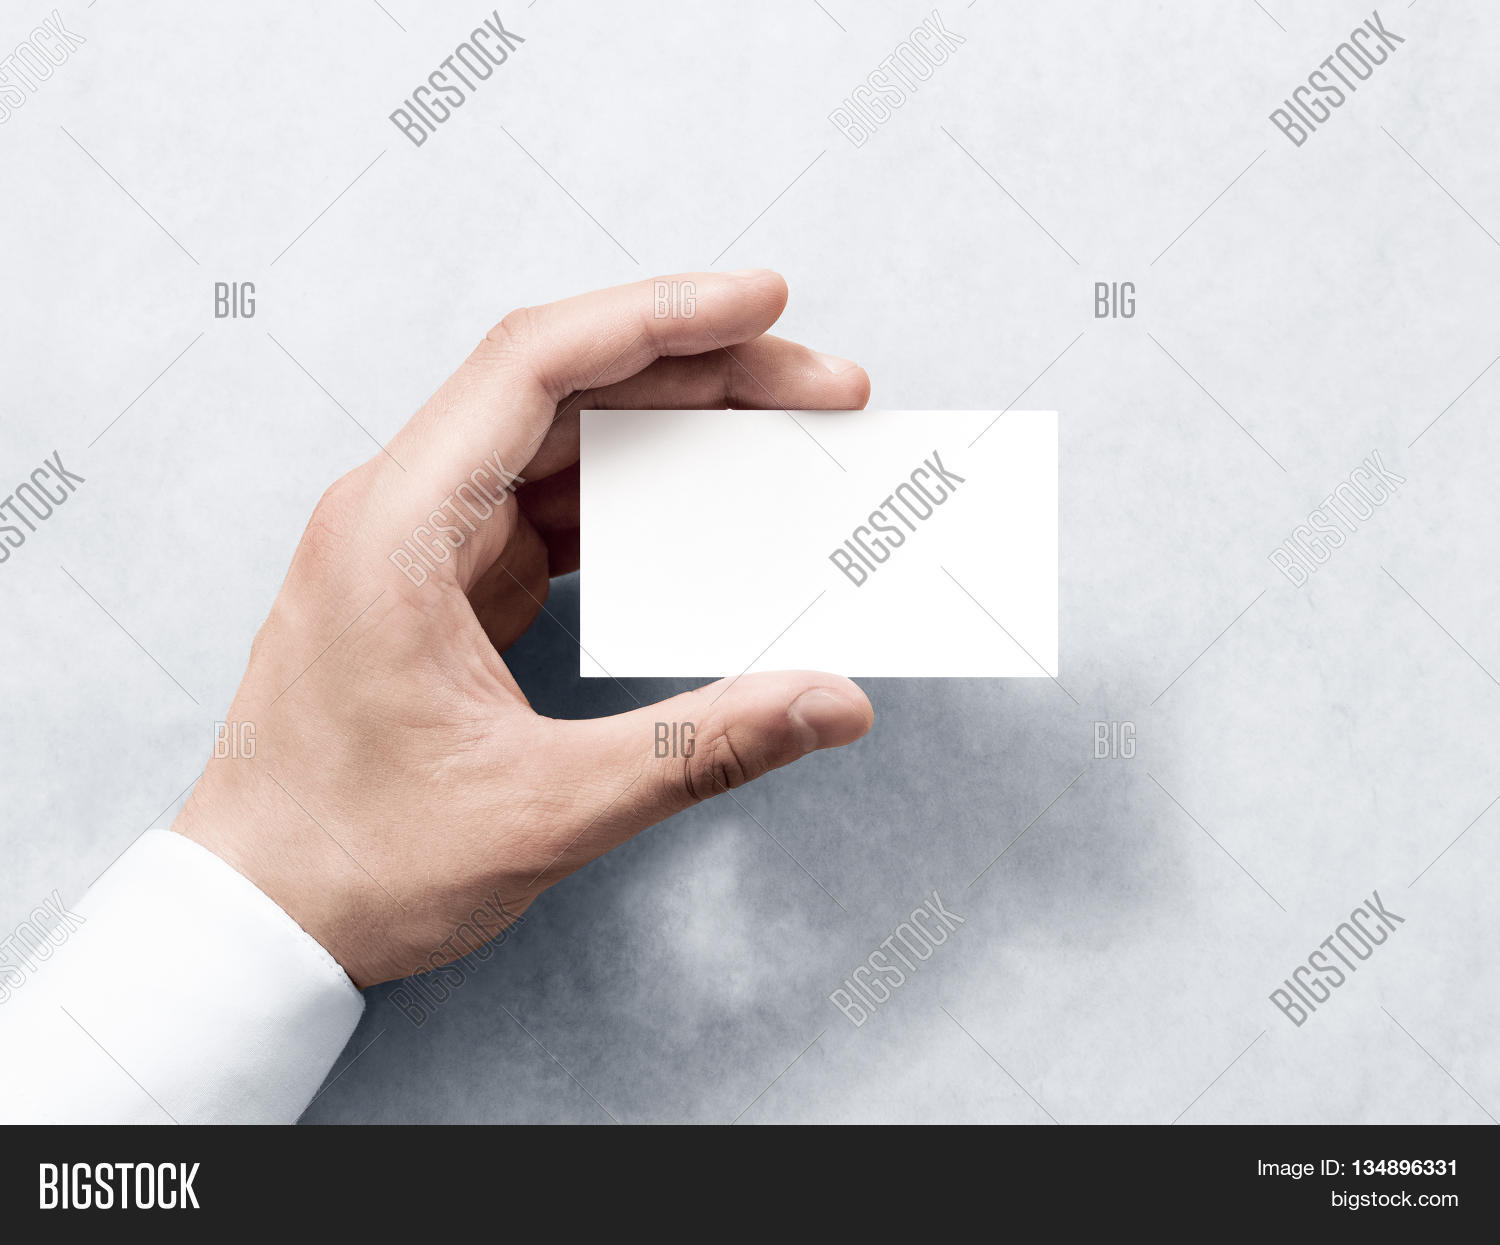 Hand Hold Blank Plain White Image & Photo | Bigstock